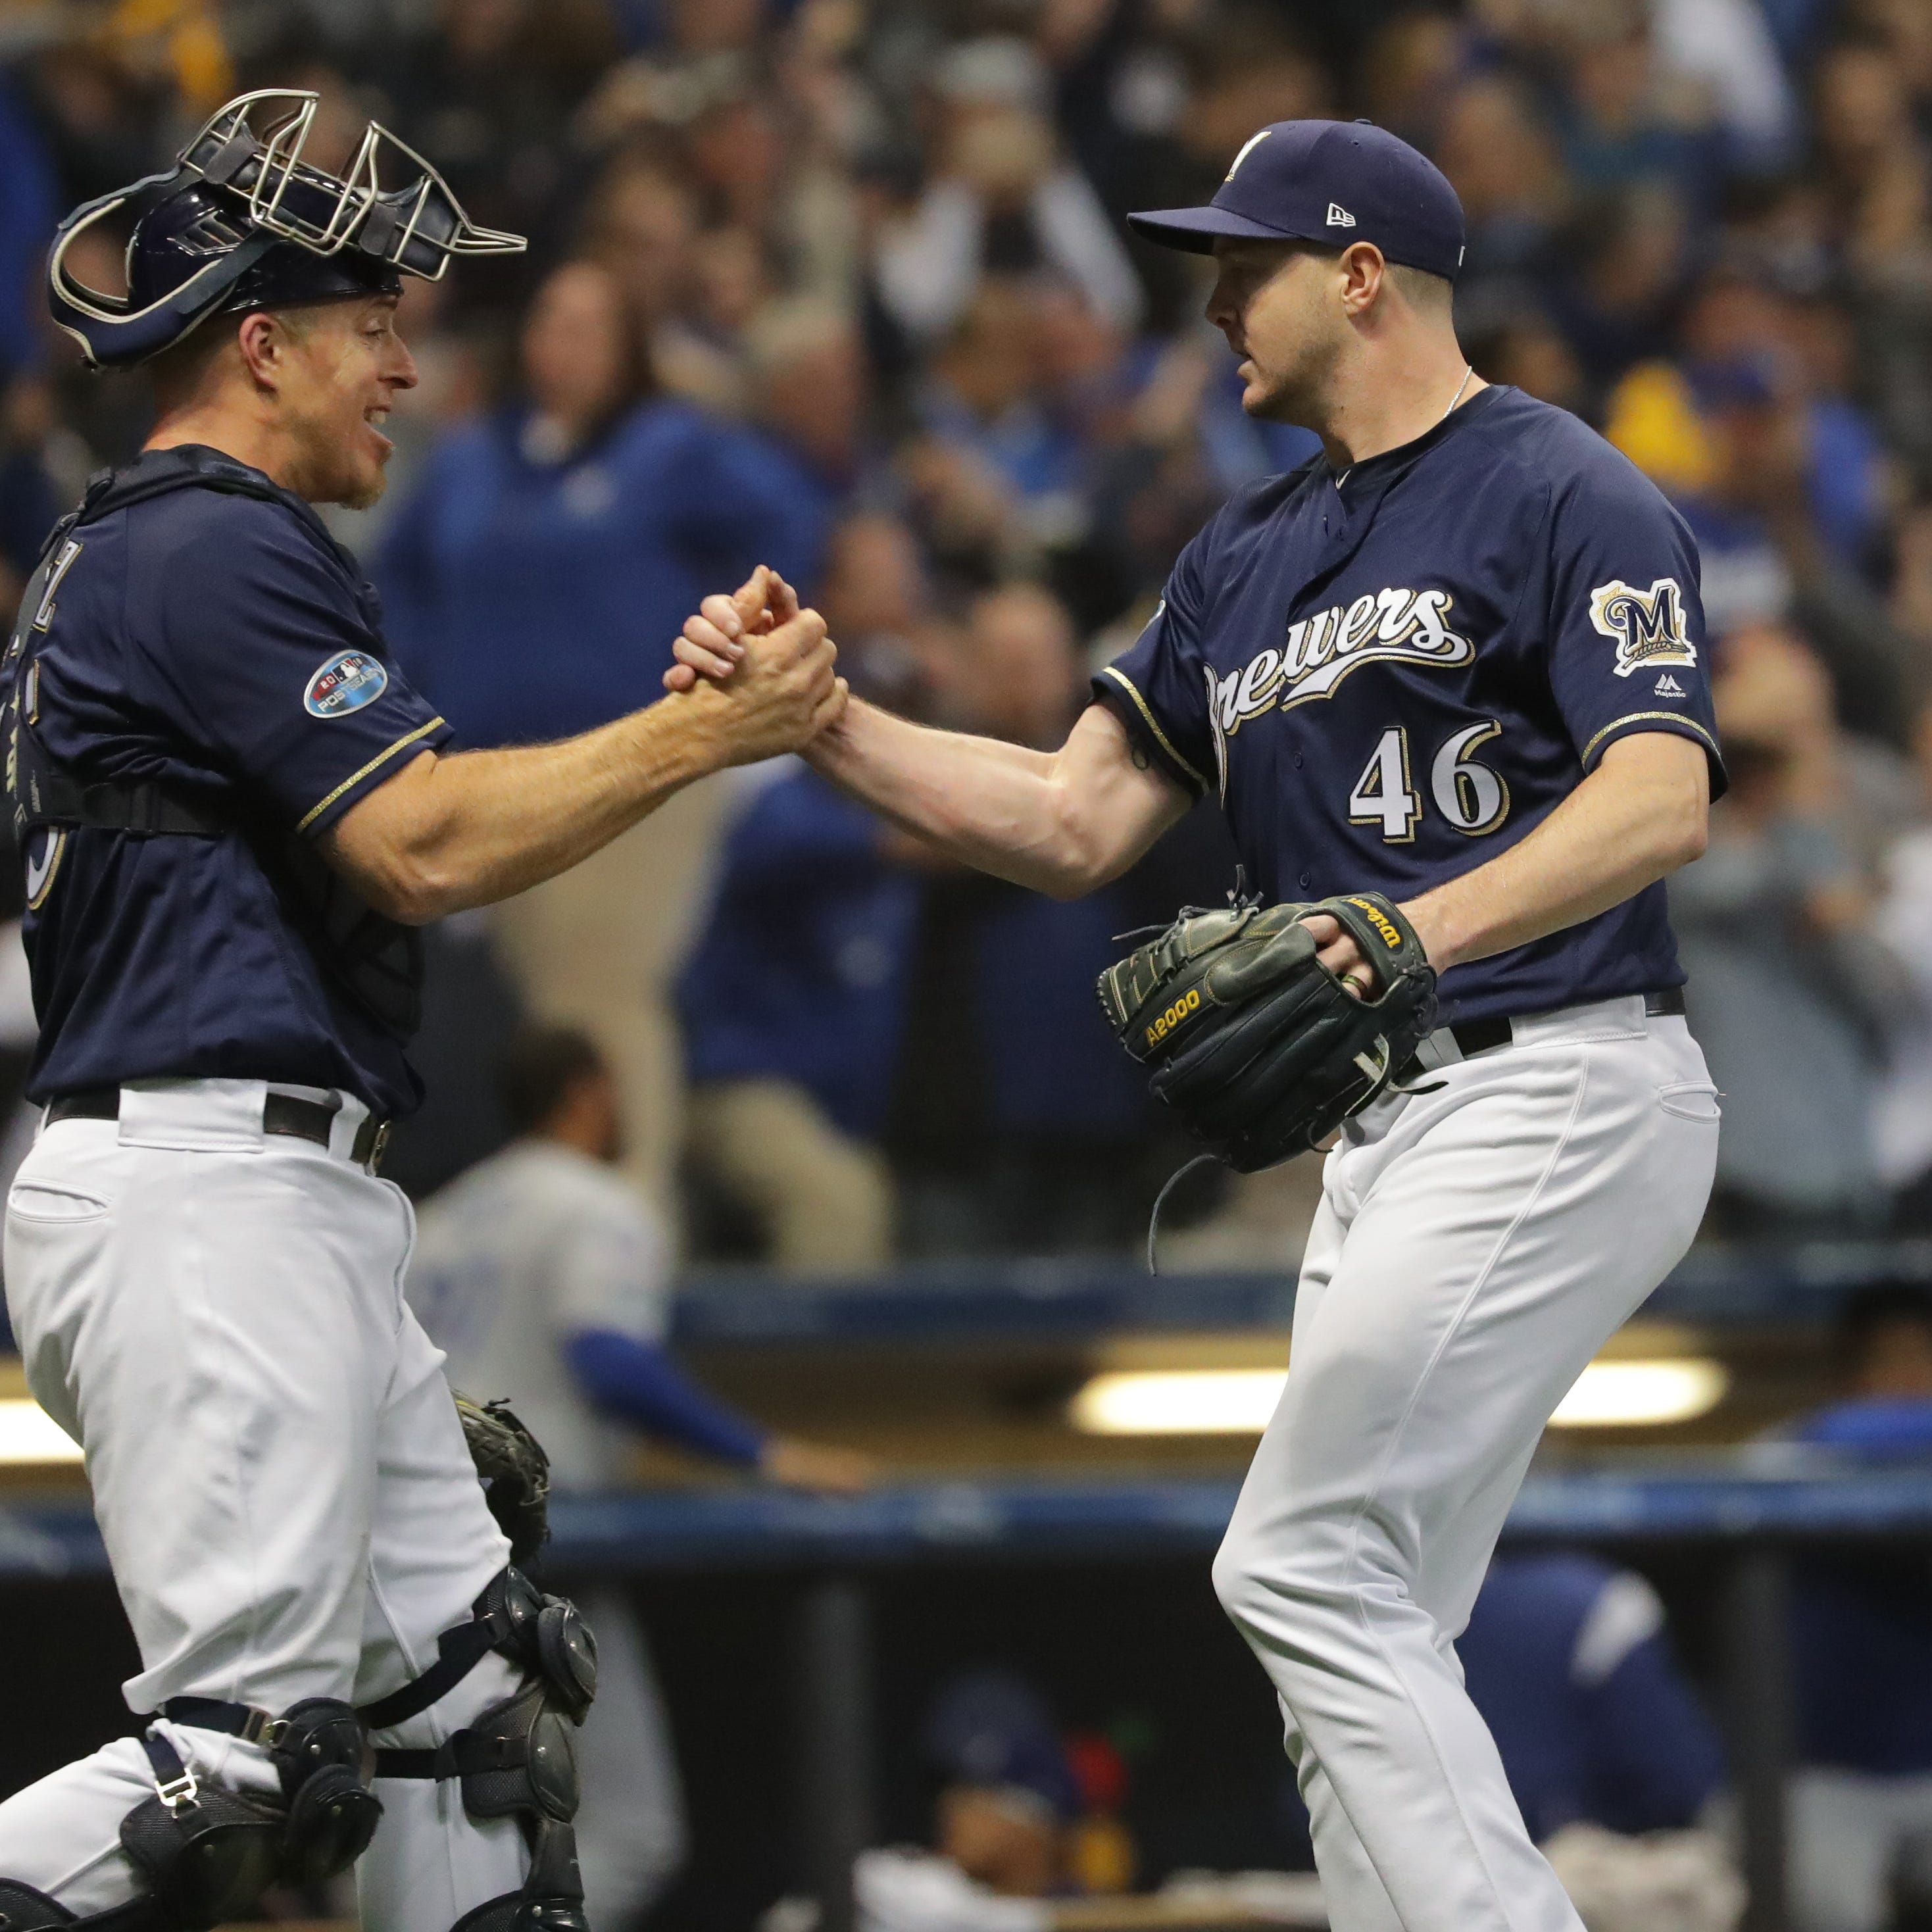 Brewers 6, Dodgers 5: Surviving some unneeded anxious moments in the end to take Game 1 of the NLCS